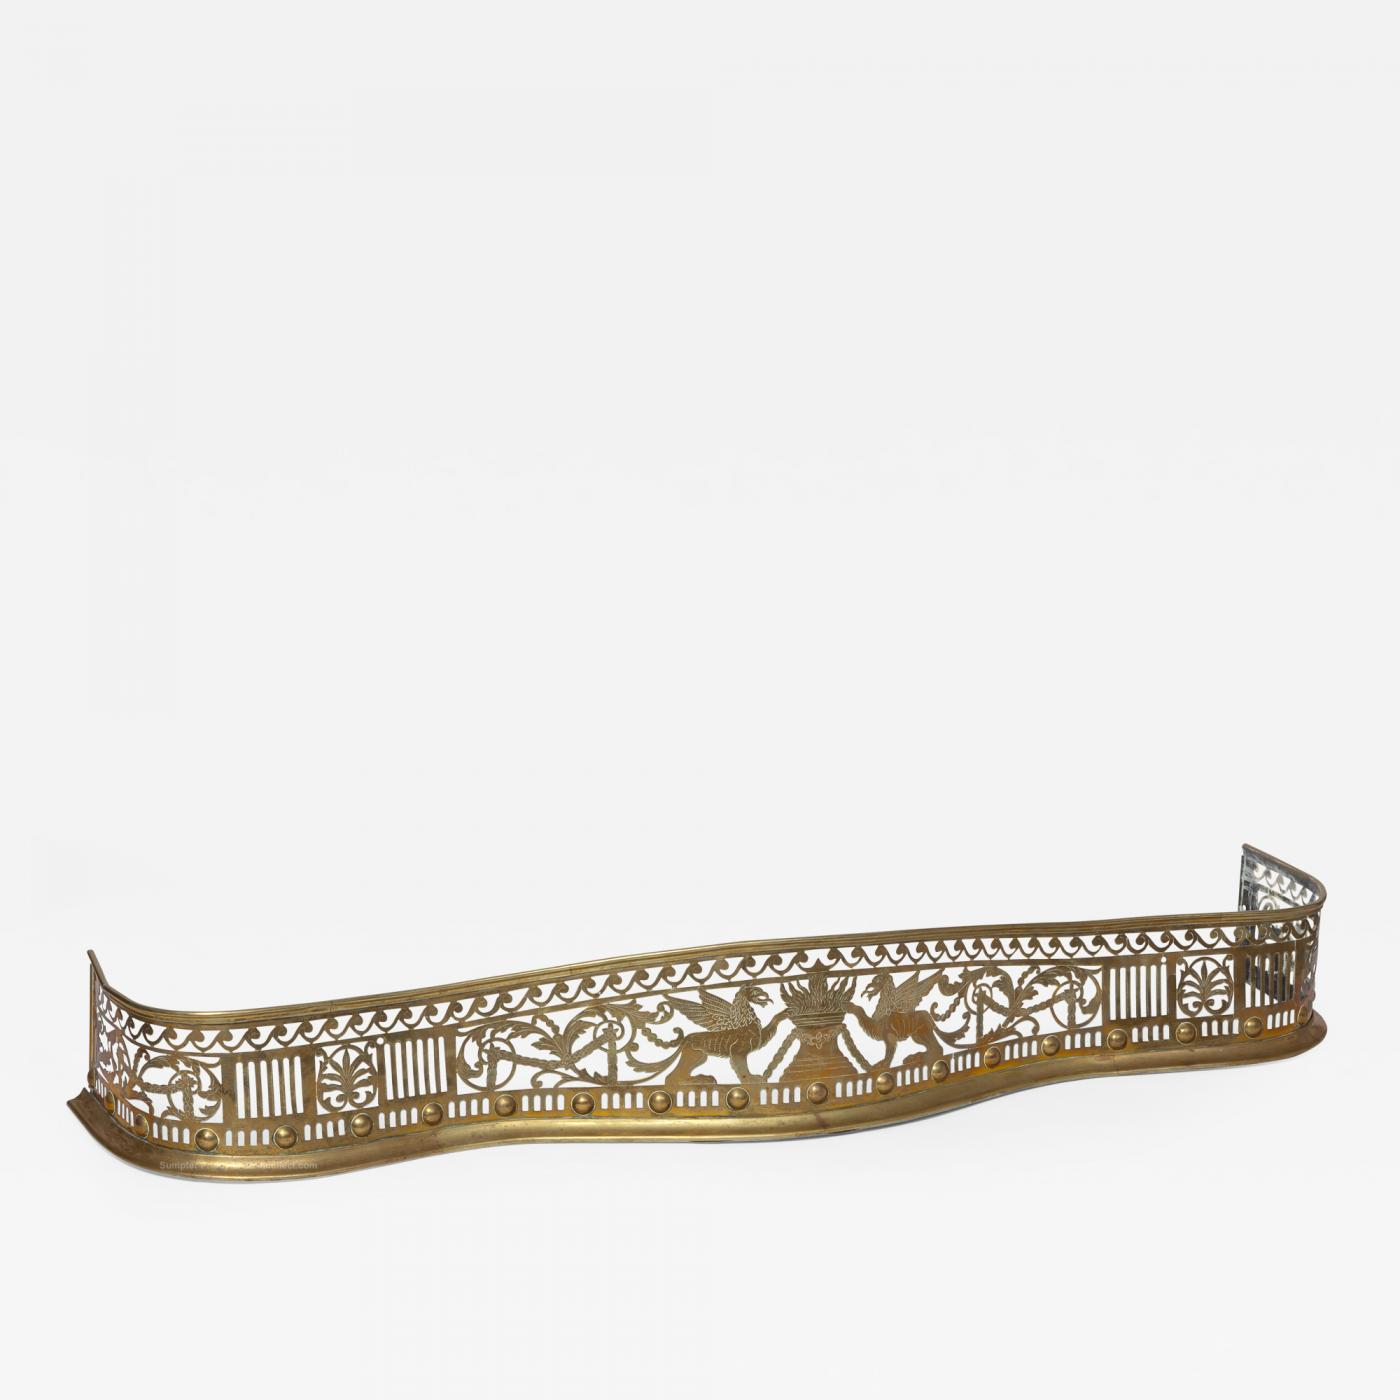 Neoclassical Brass Fireplace Fender 1775 1795